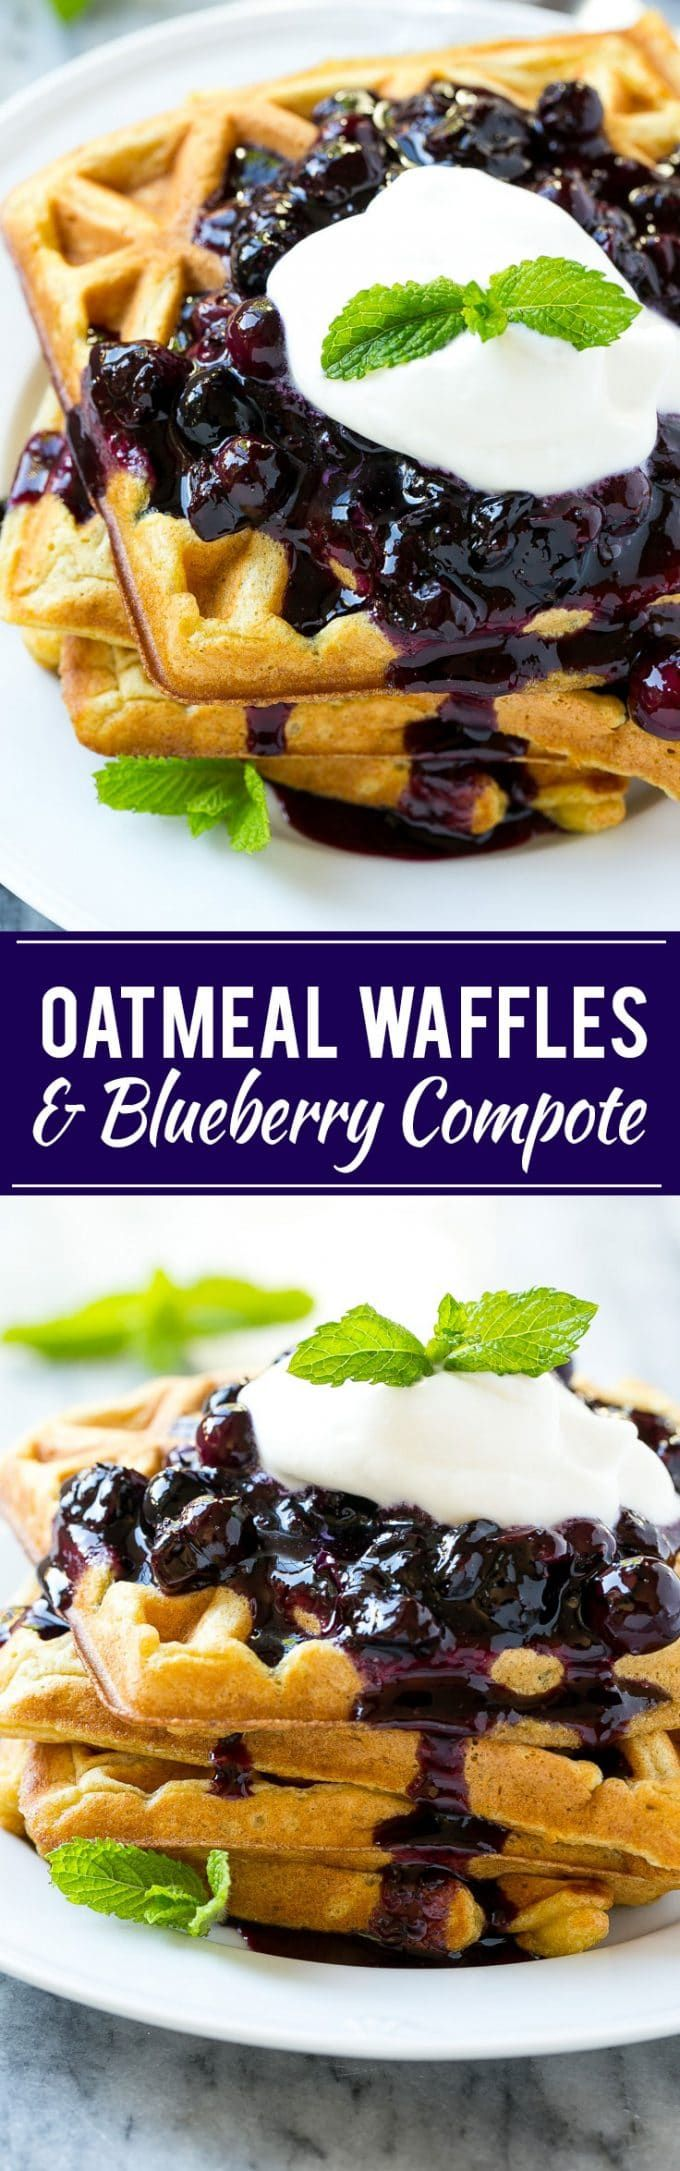 Oatmeal Waffles with Blueberry Compote Recipe | Easy Oatmeal Waffles | Best Oatmeal Waffles | Blueberry Compote